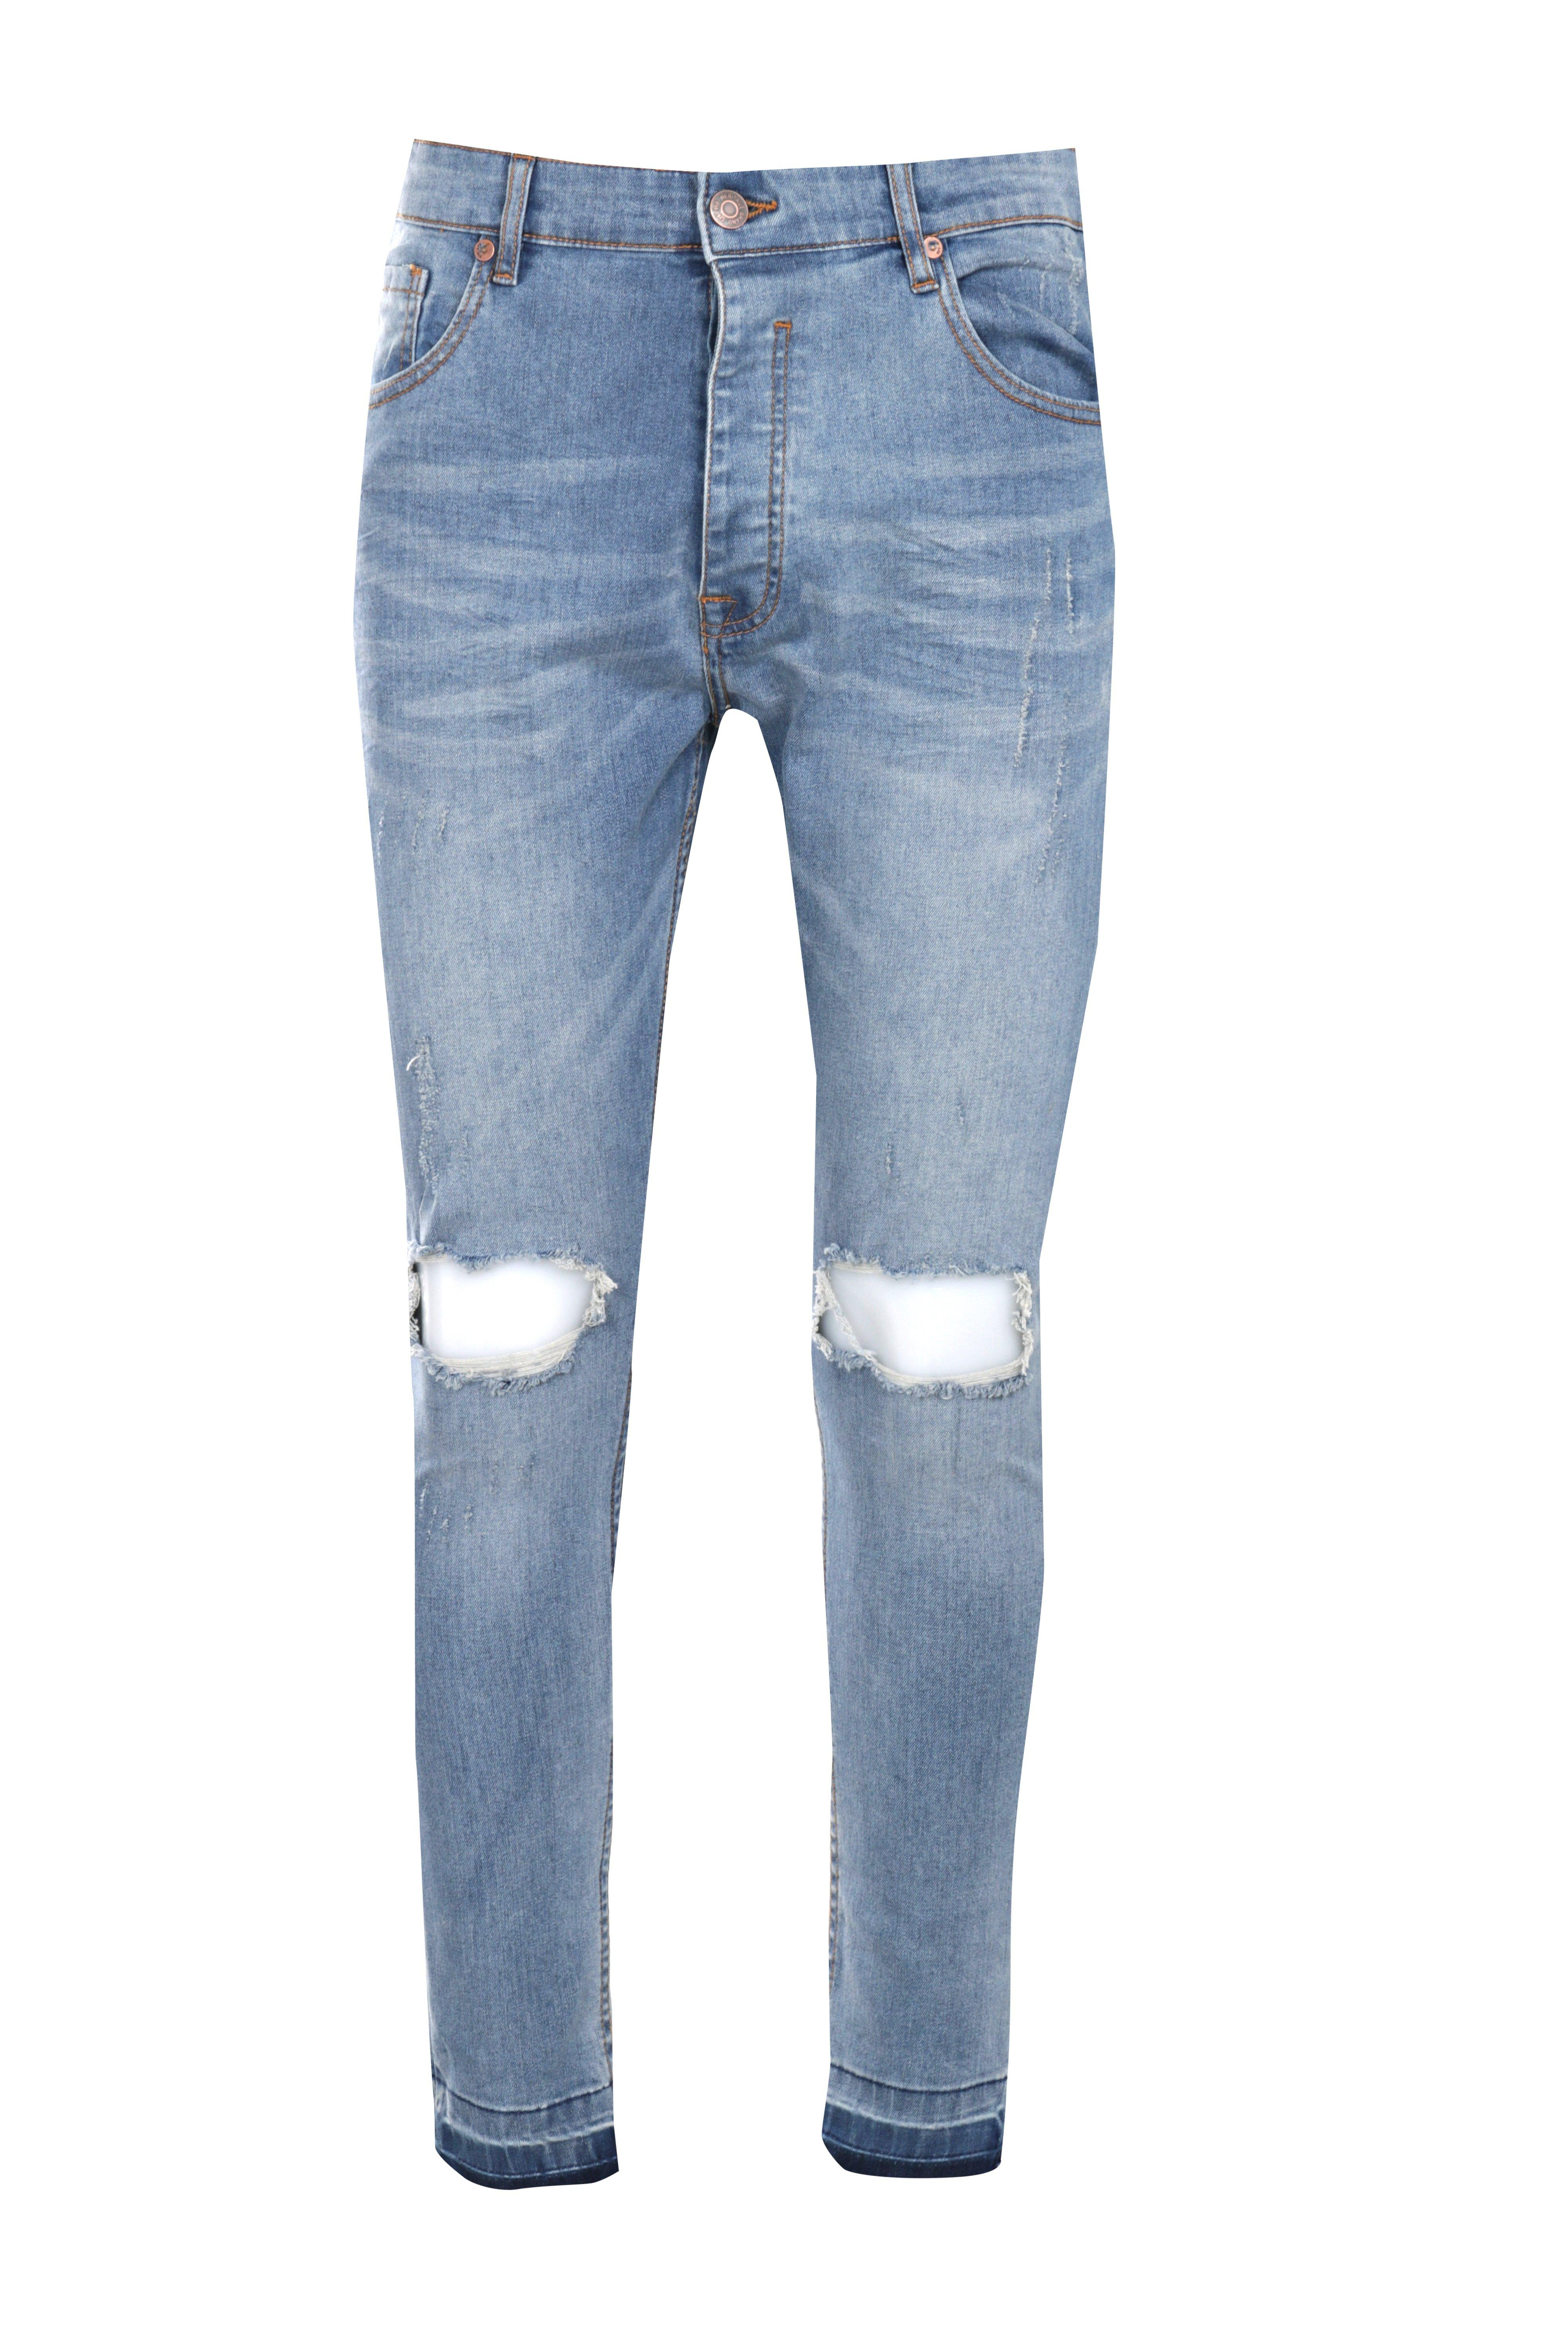 boohooMAN Pale Blue Skinny Fit Ripped Knee Jeans